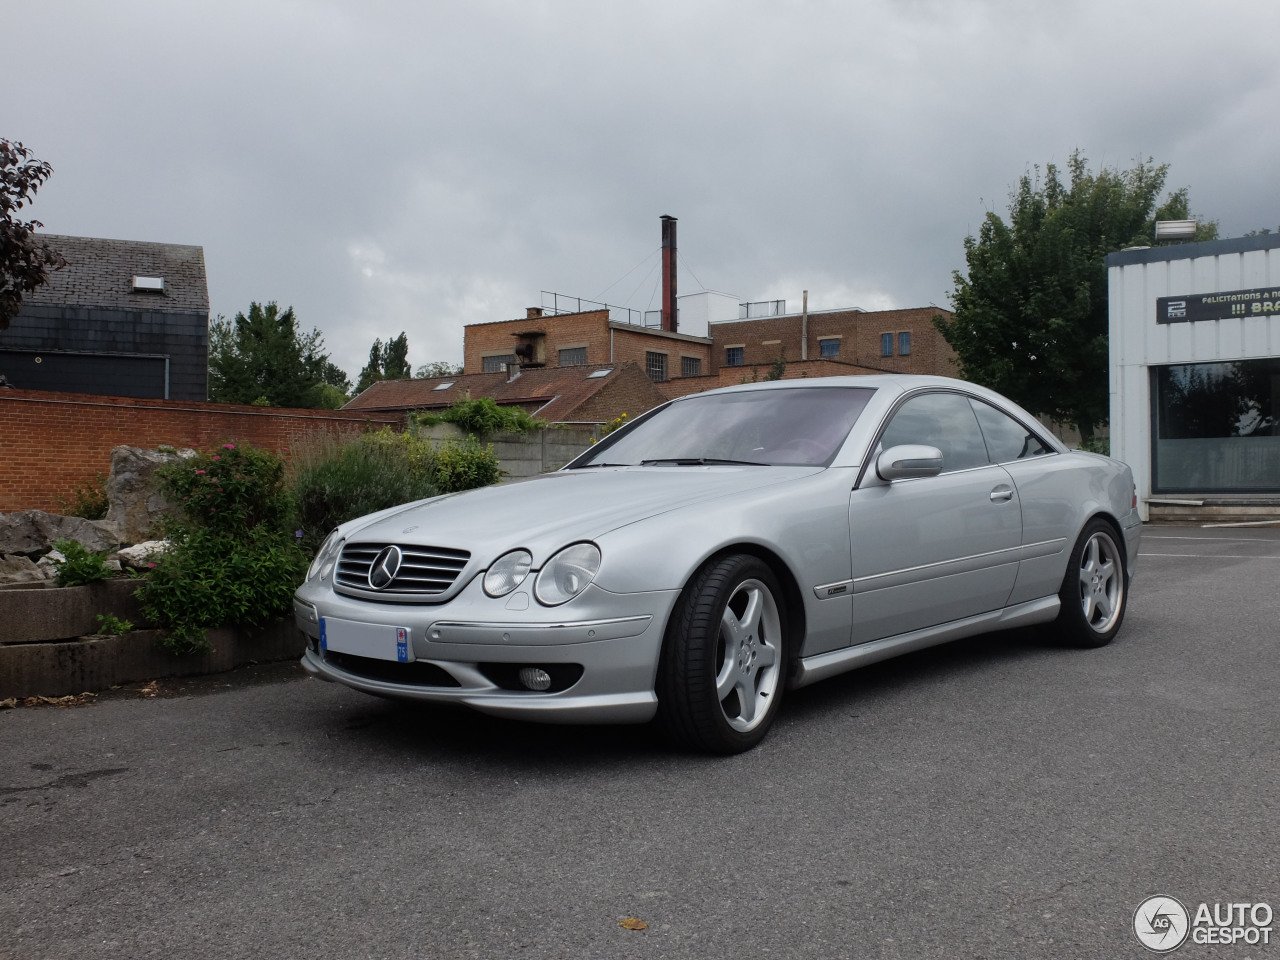 Mercedes benz cl 55 amg f1 limited edition 24 augustus for Mercedes benz f1